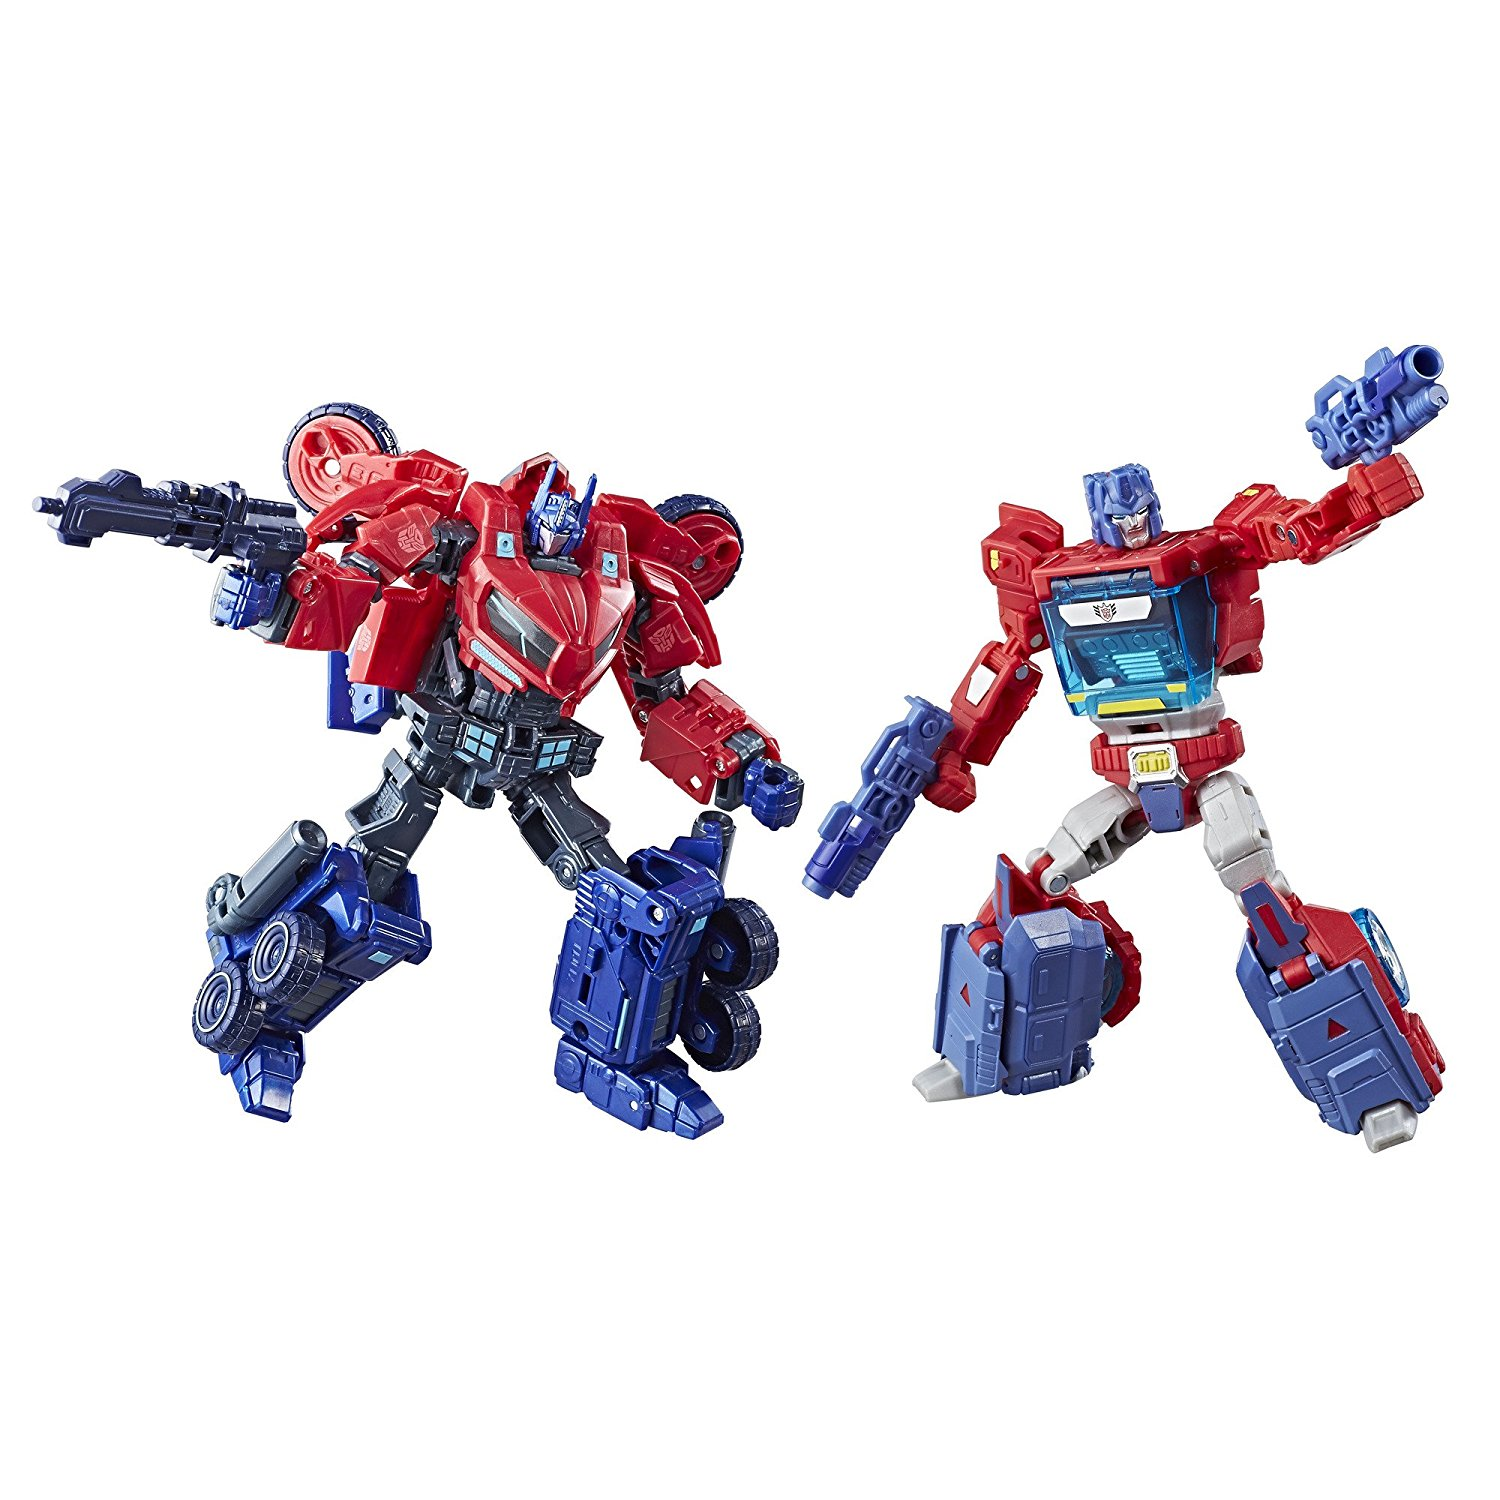 Hasbro Transformers Deluxe Class Optimus Prime Autobot Legacy 2-Pack Restocked On Amazon